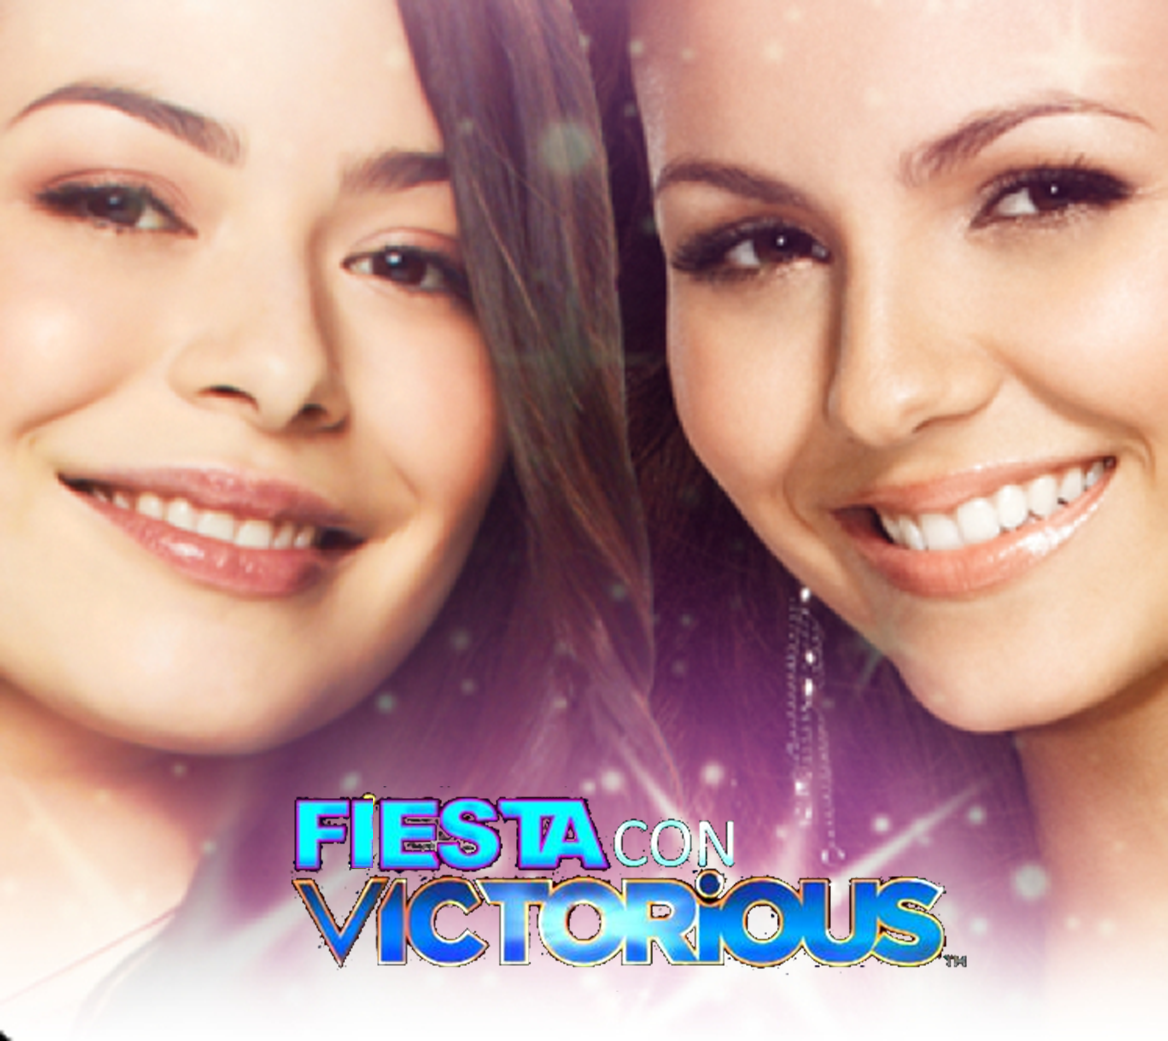 Miss Victorious And Icarly Temzdzp Nude Porn Pictures